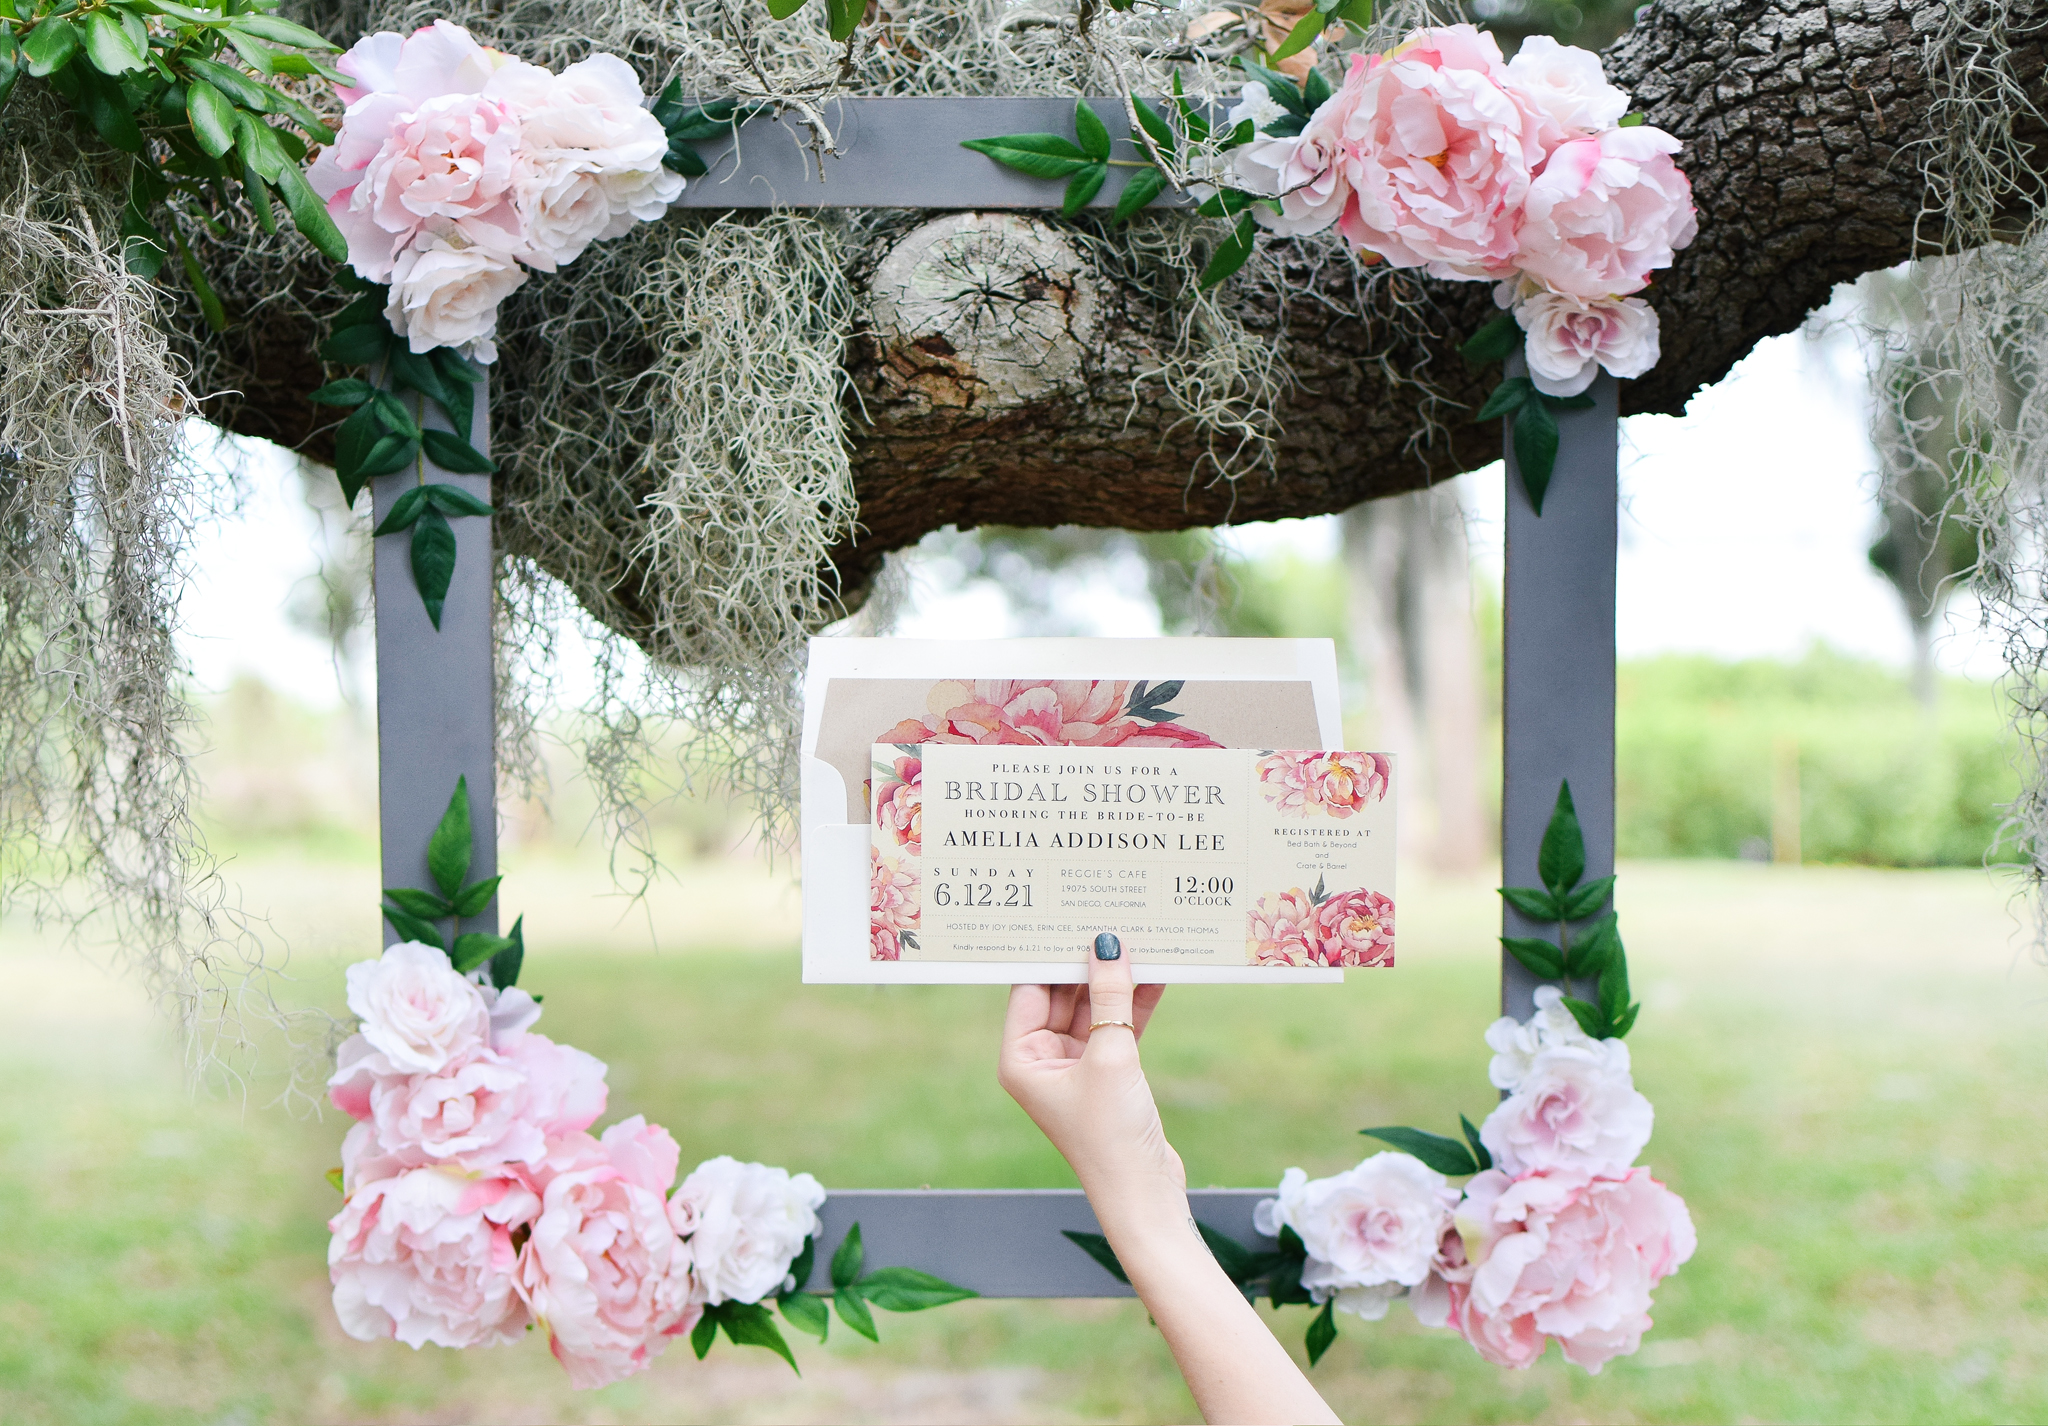 Diy Bridal Shower Floral Photo Booth Frame Beacon Lane